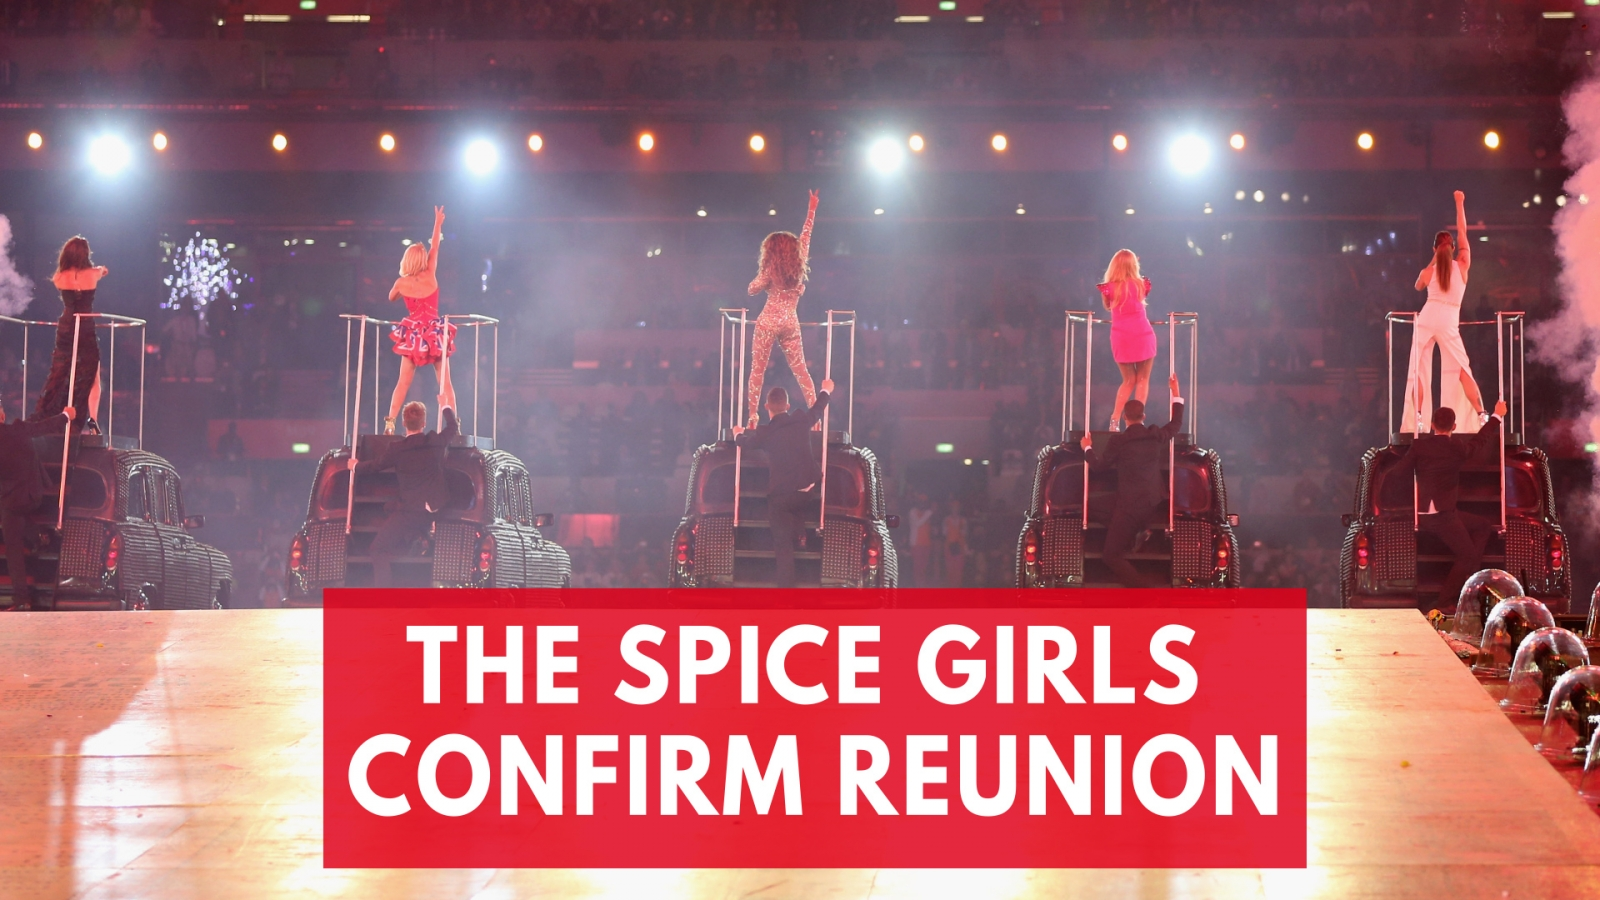 the-spice-girls-are-reuniting-to-work-on-new-opportunities-together